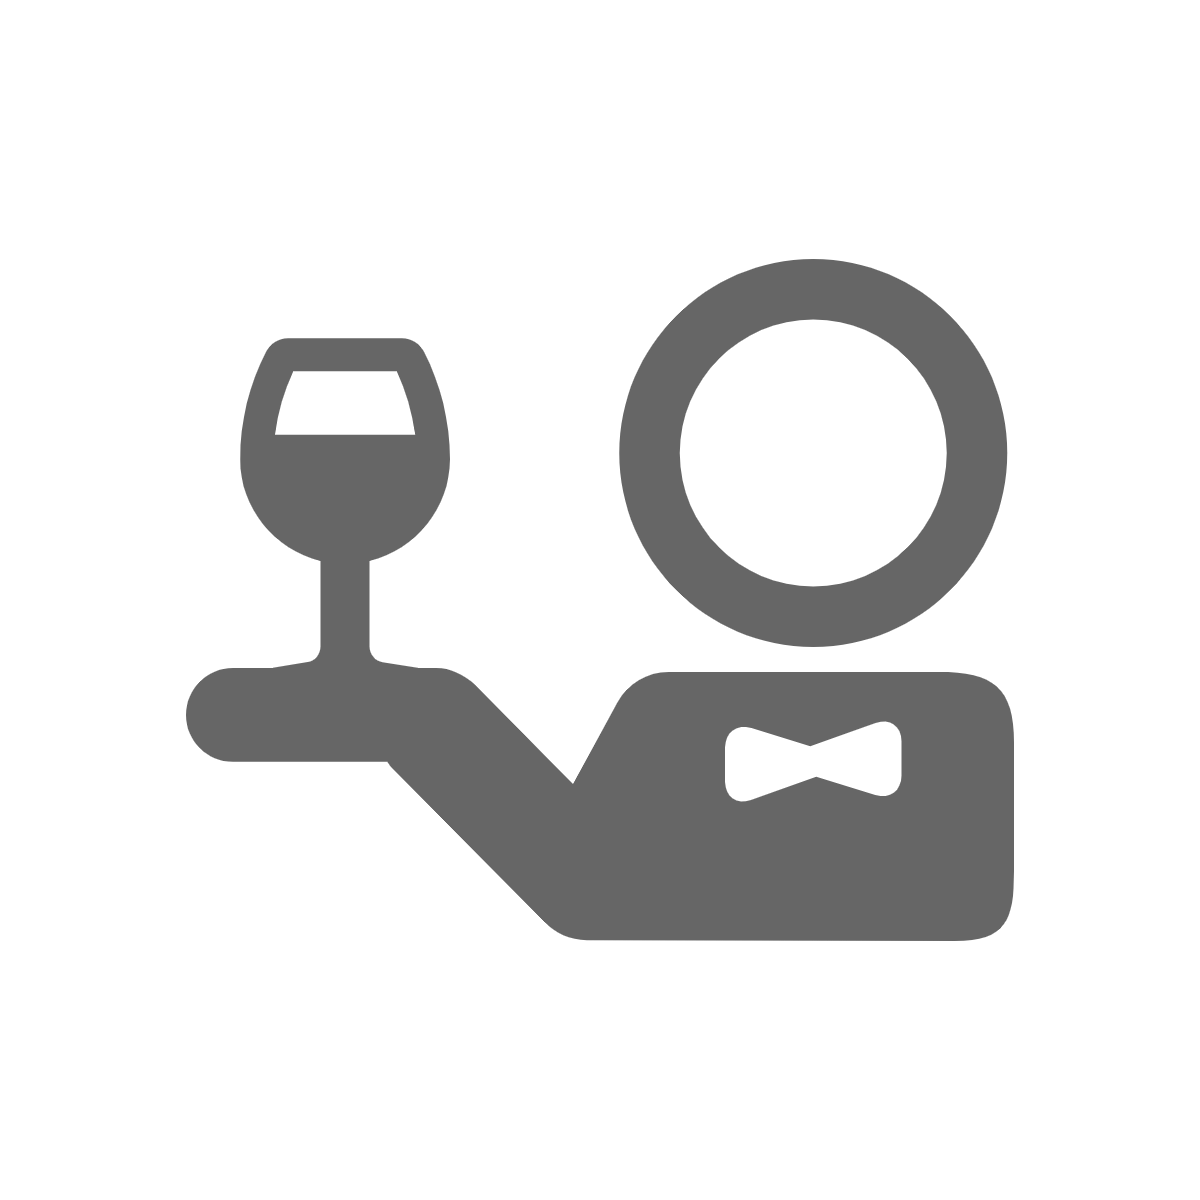 an icon of a waiter with a glass of champagne